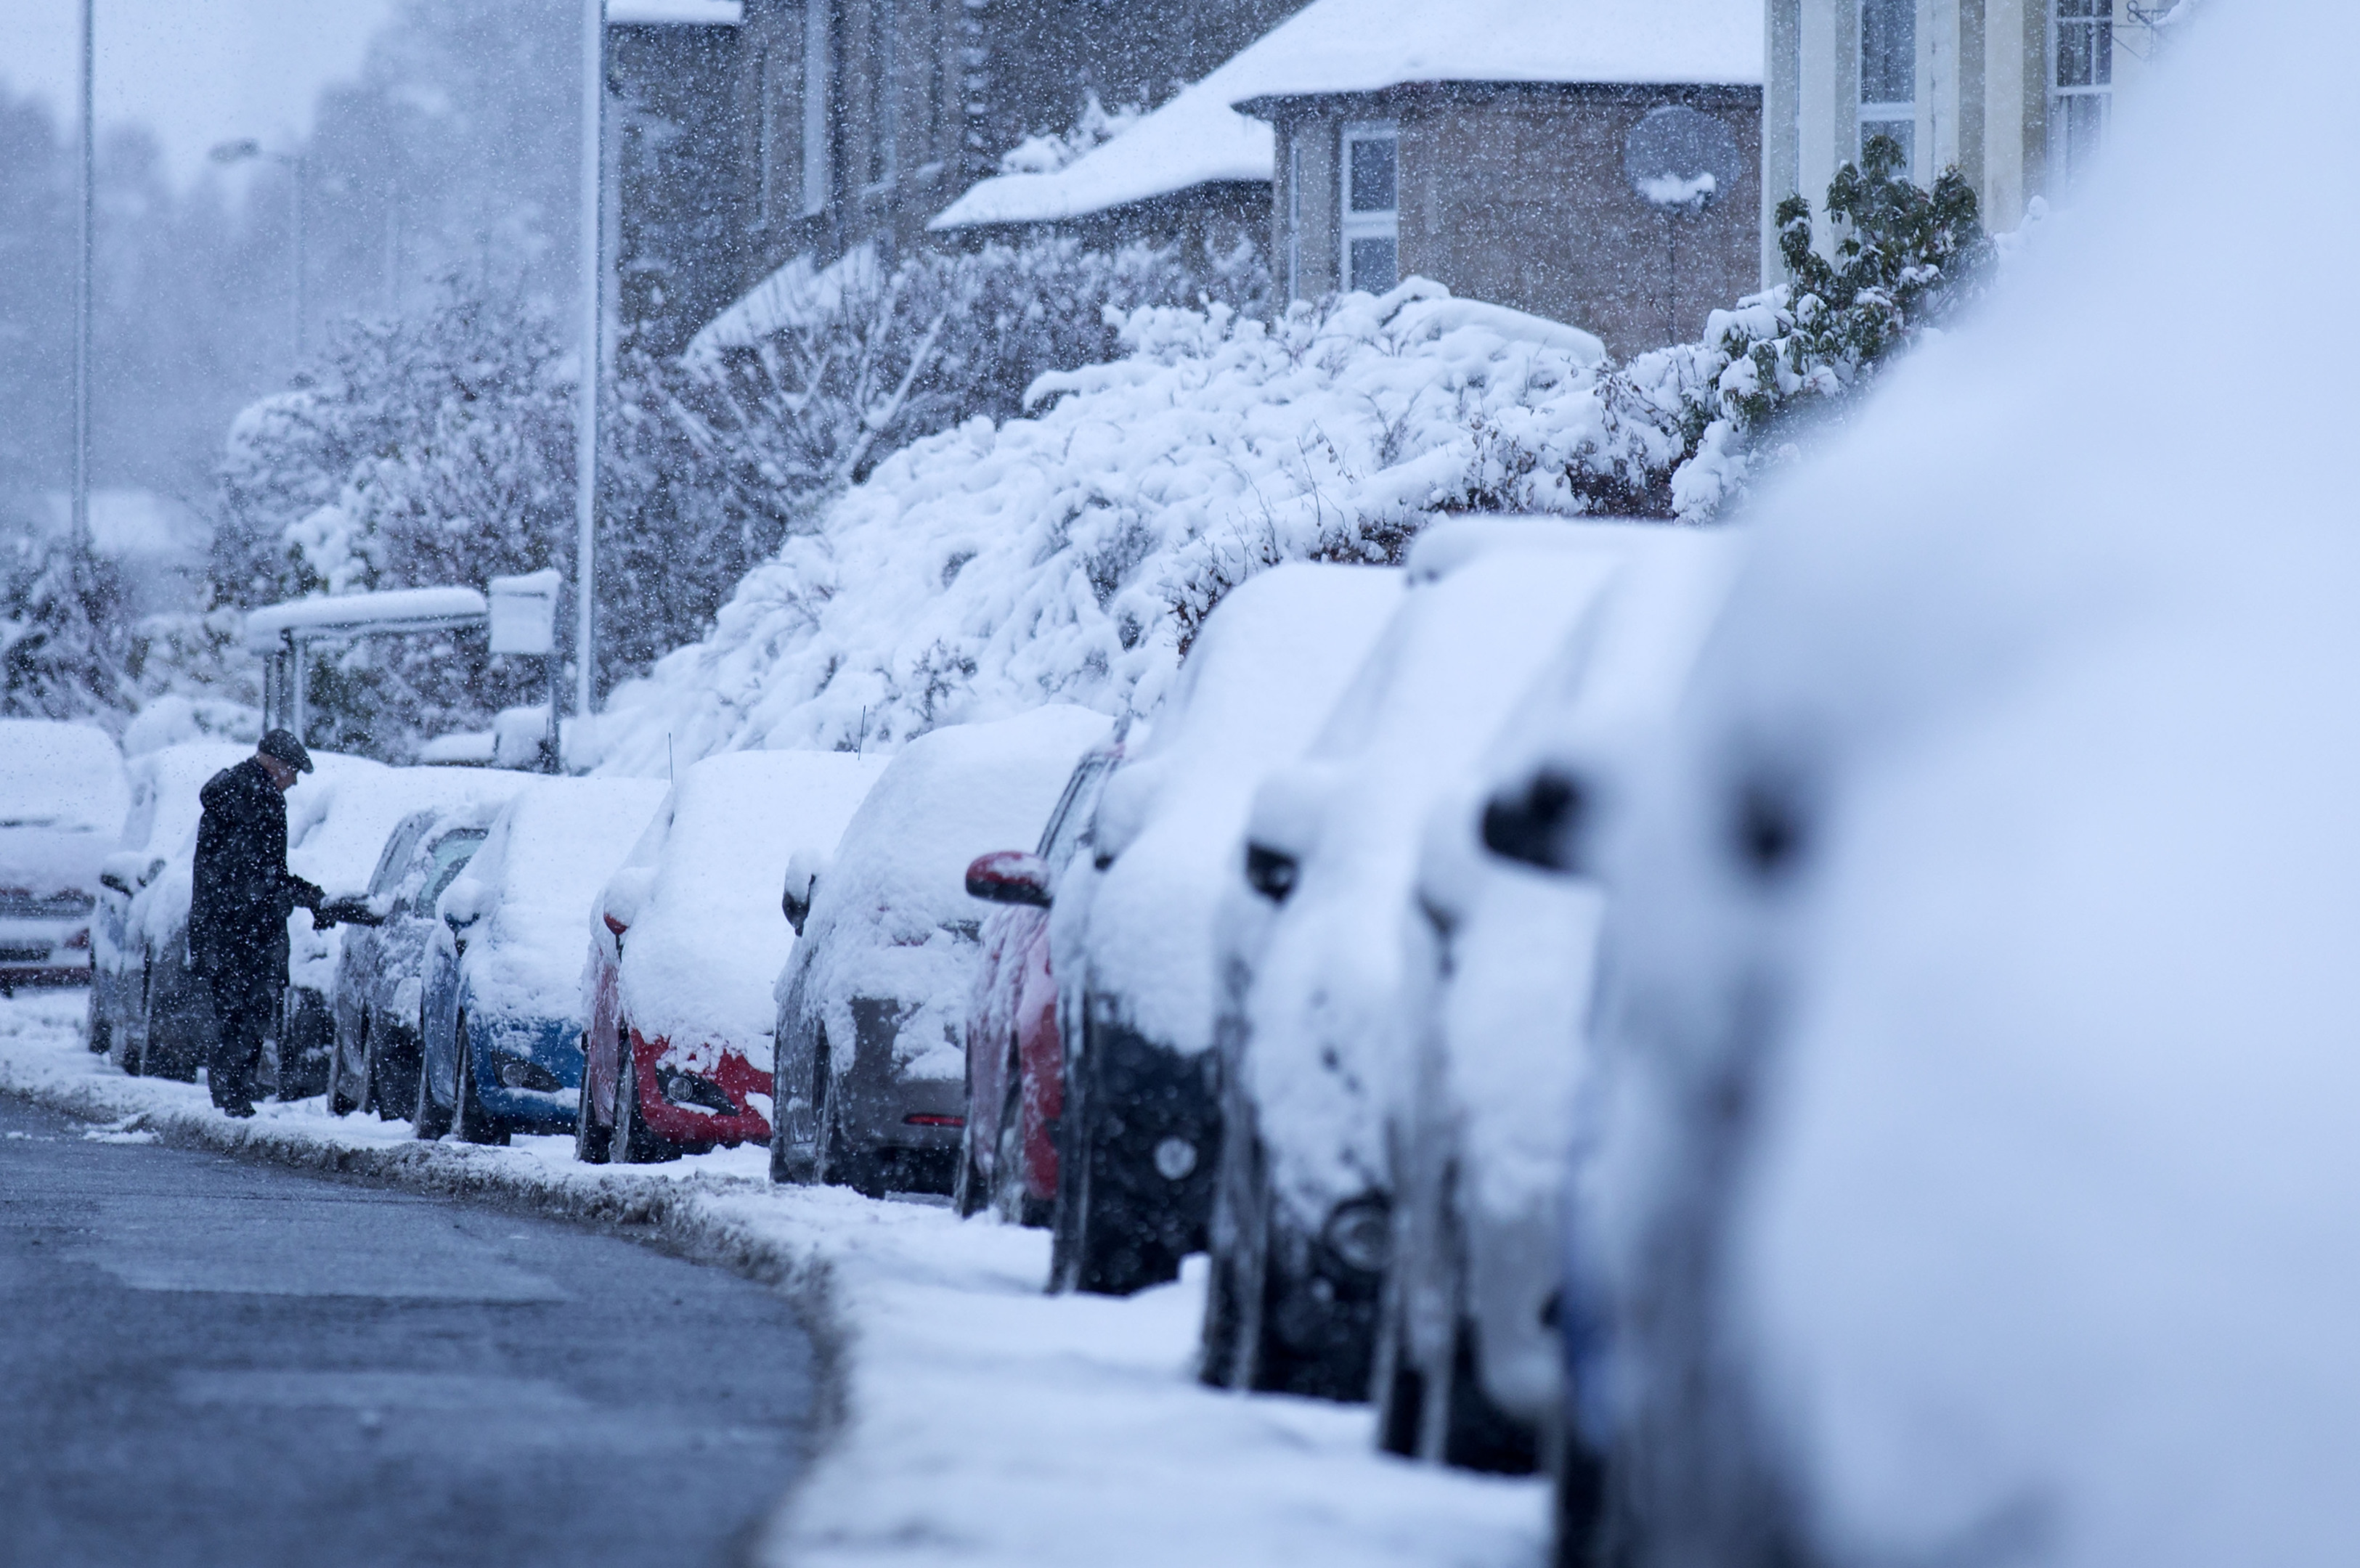 Heavy snow covers parked cars in Midlothian (David Cheskin/PA Wire)